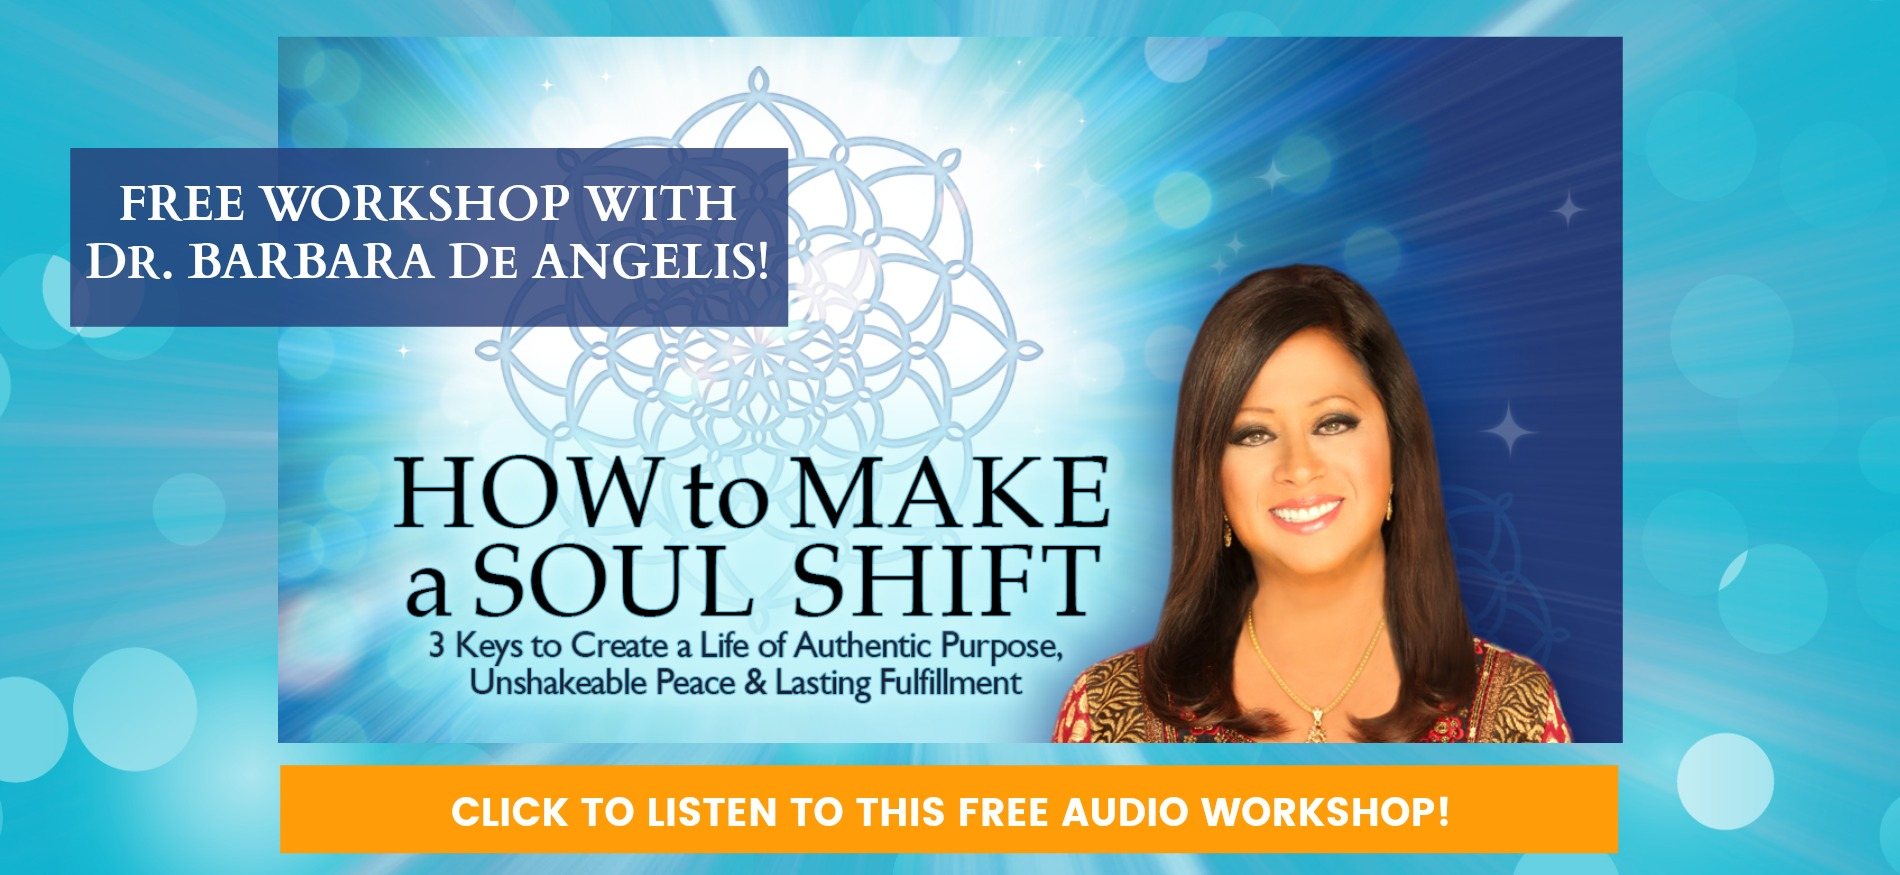 Dr Barbara De Angelis How to Make a Soul Shift virtual event recording